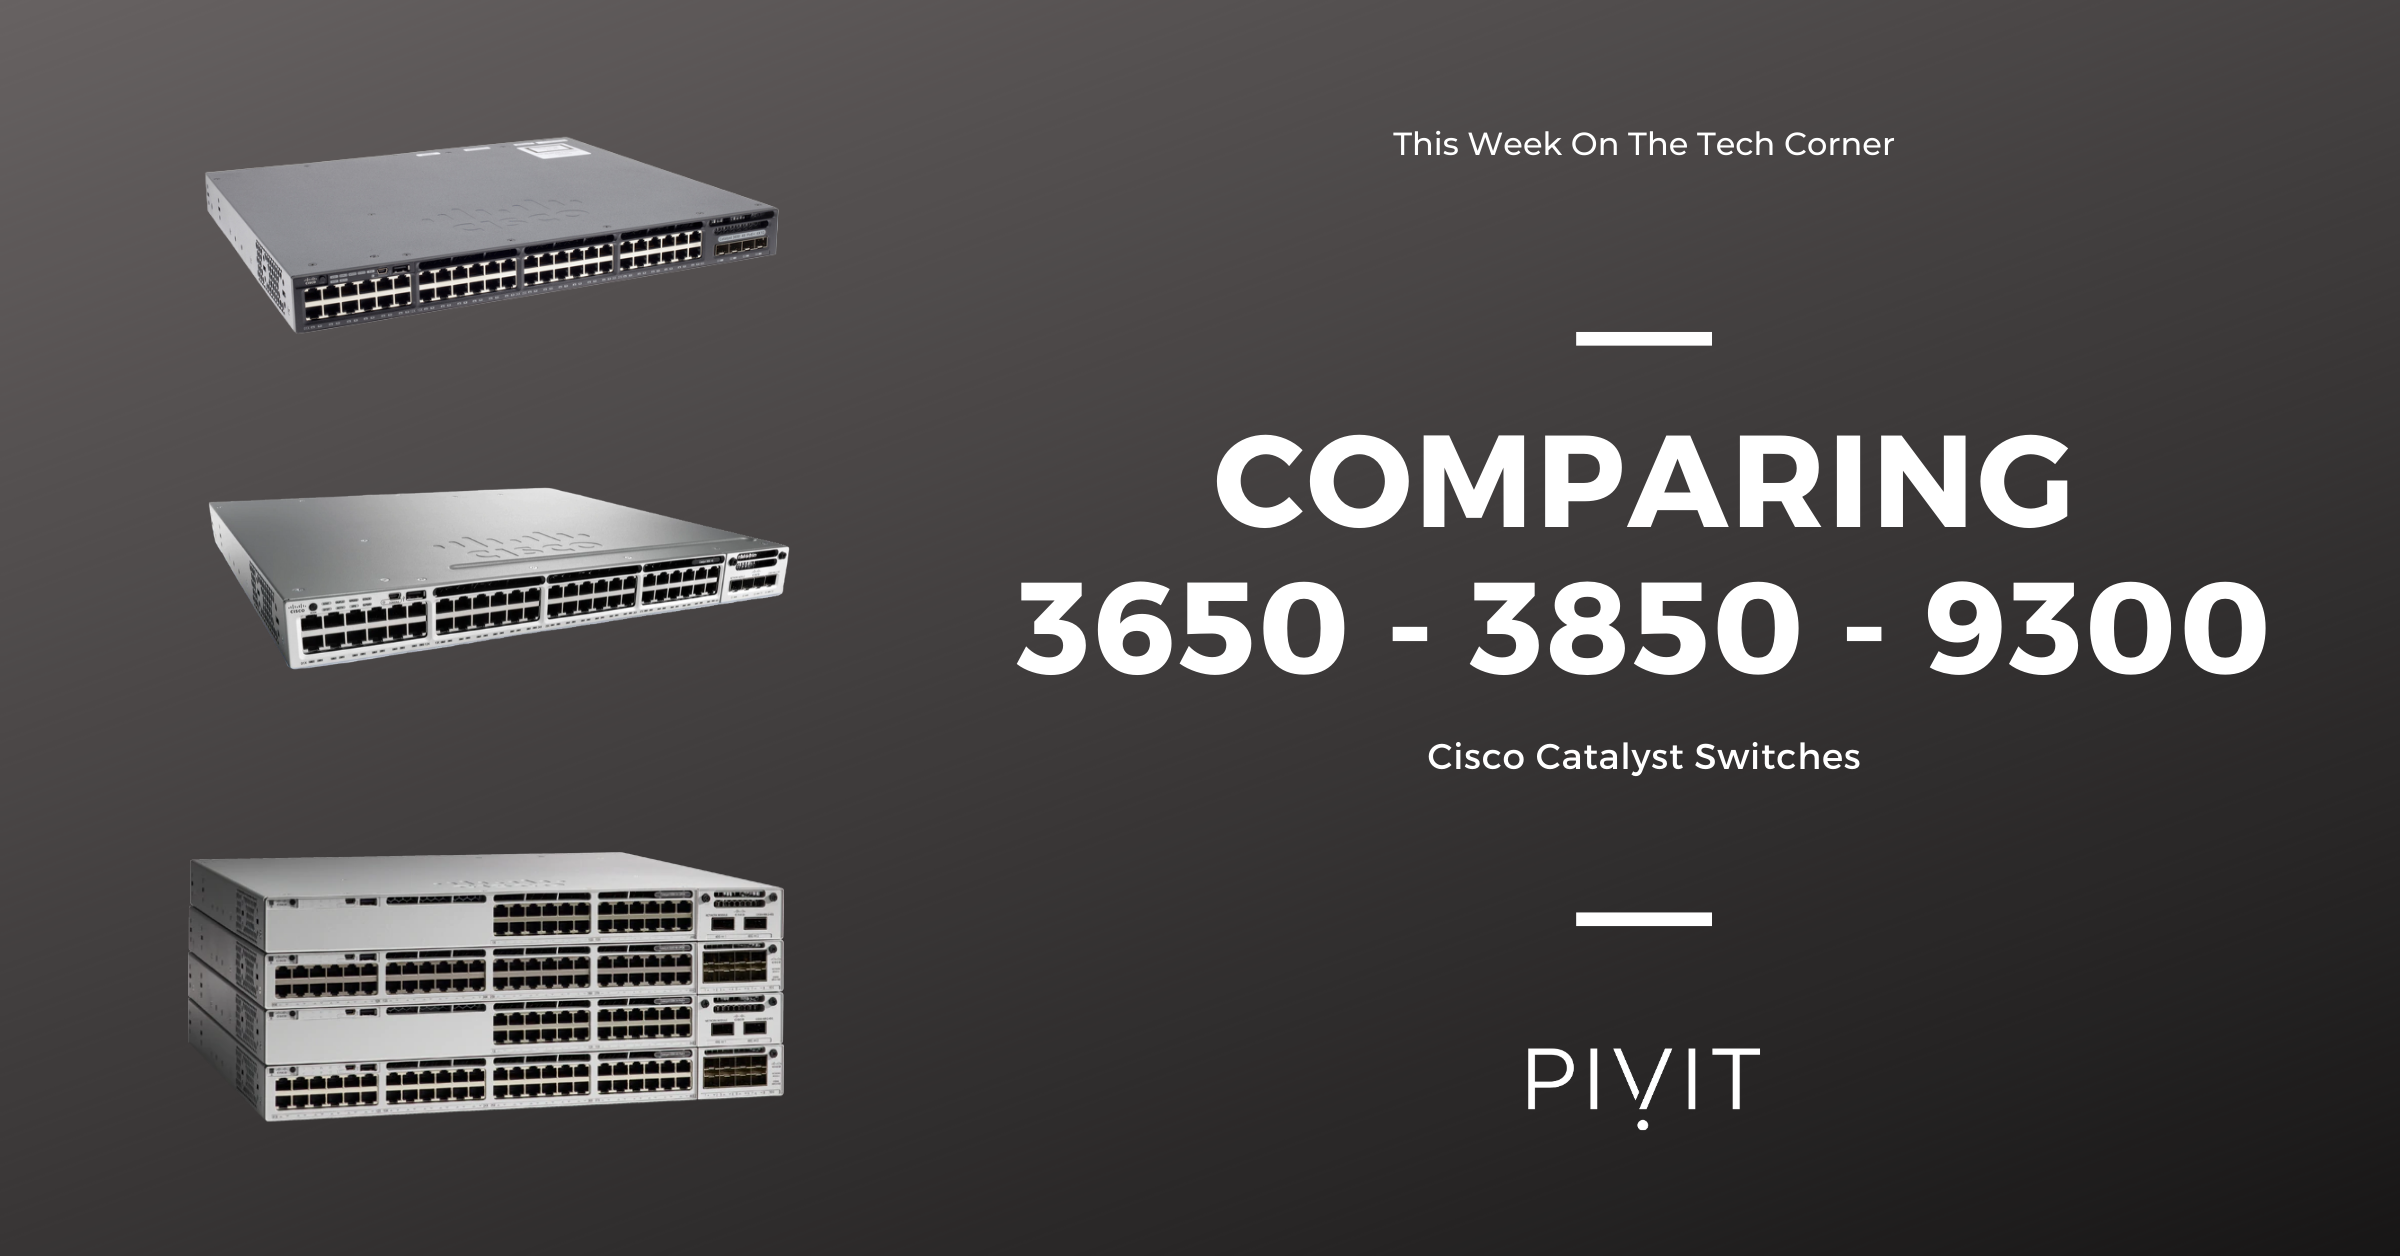 Comparing the Cisco 3560, 3850, and 9300 Switches